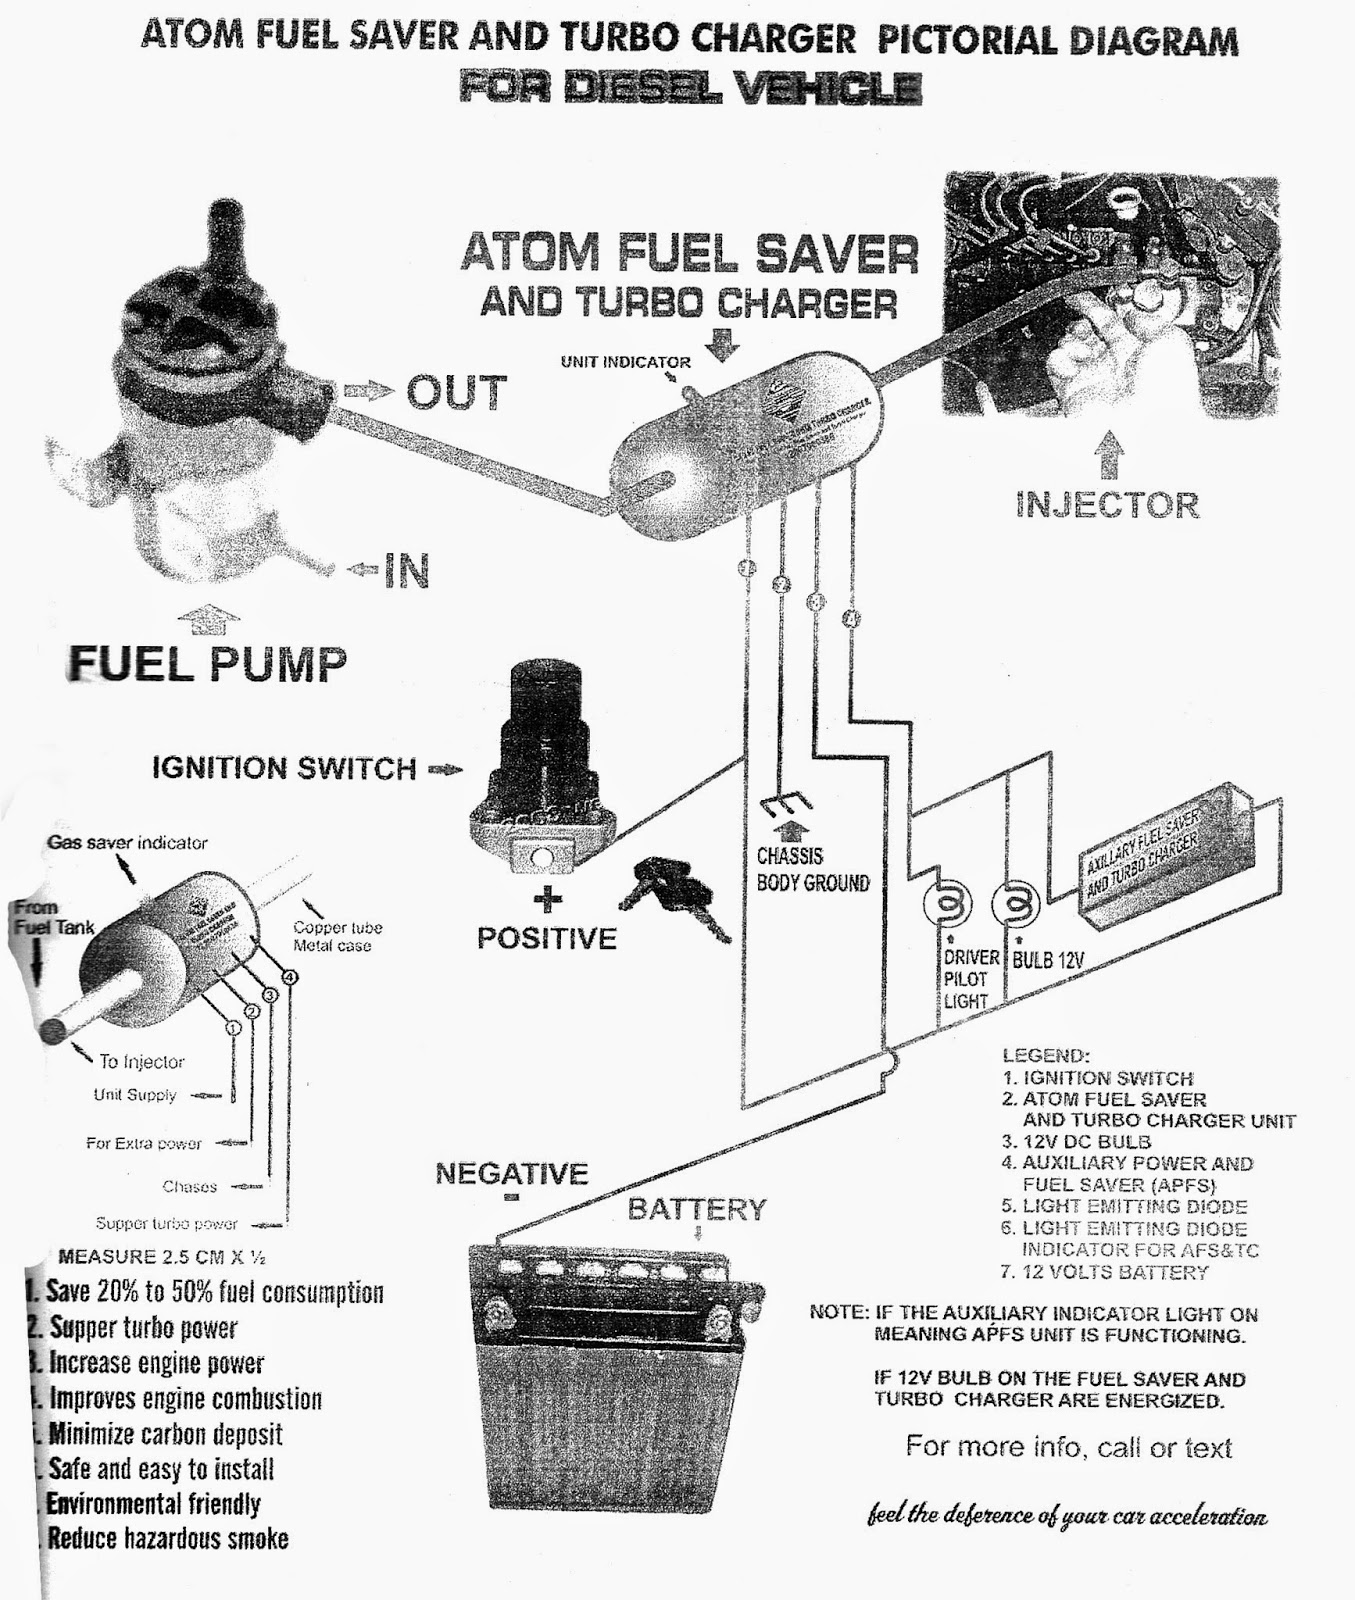 Atom Fuel Saver And Turbo Charger Atom Fuel Saver And